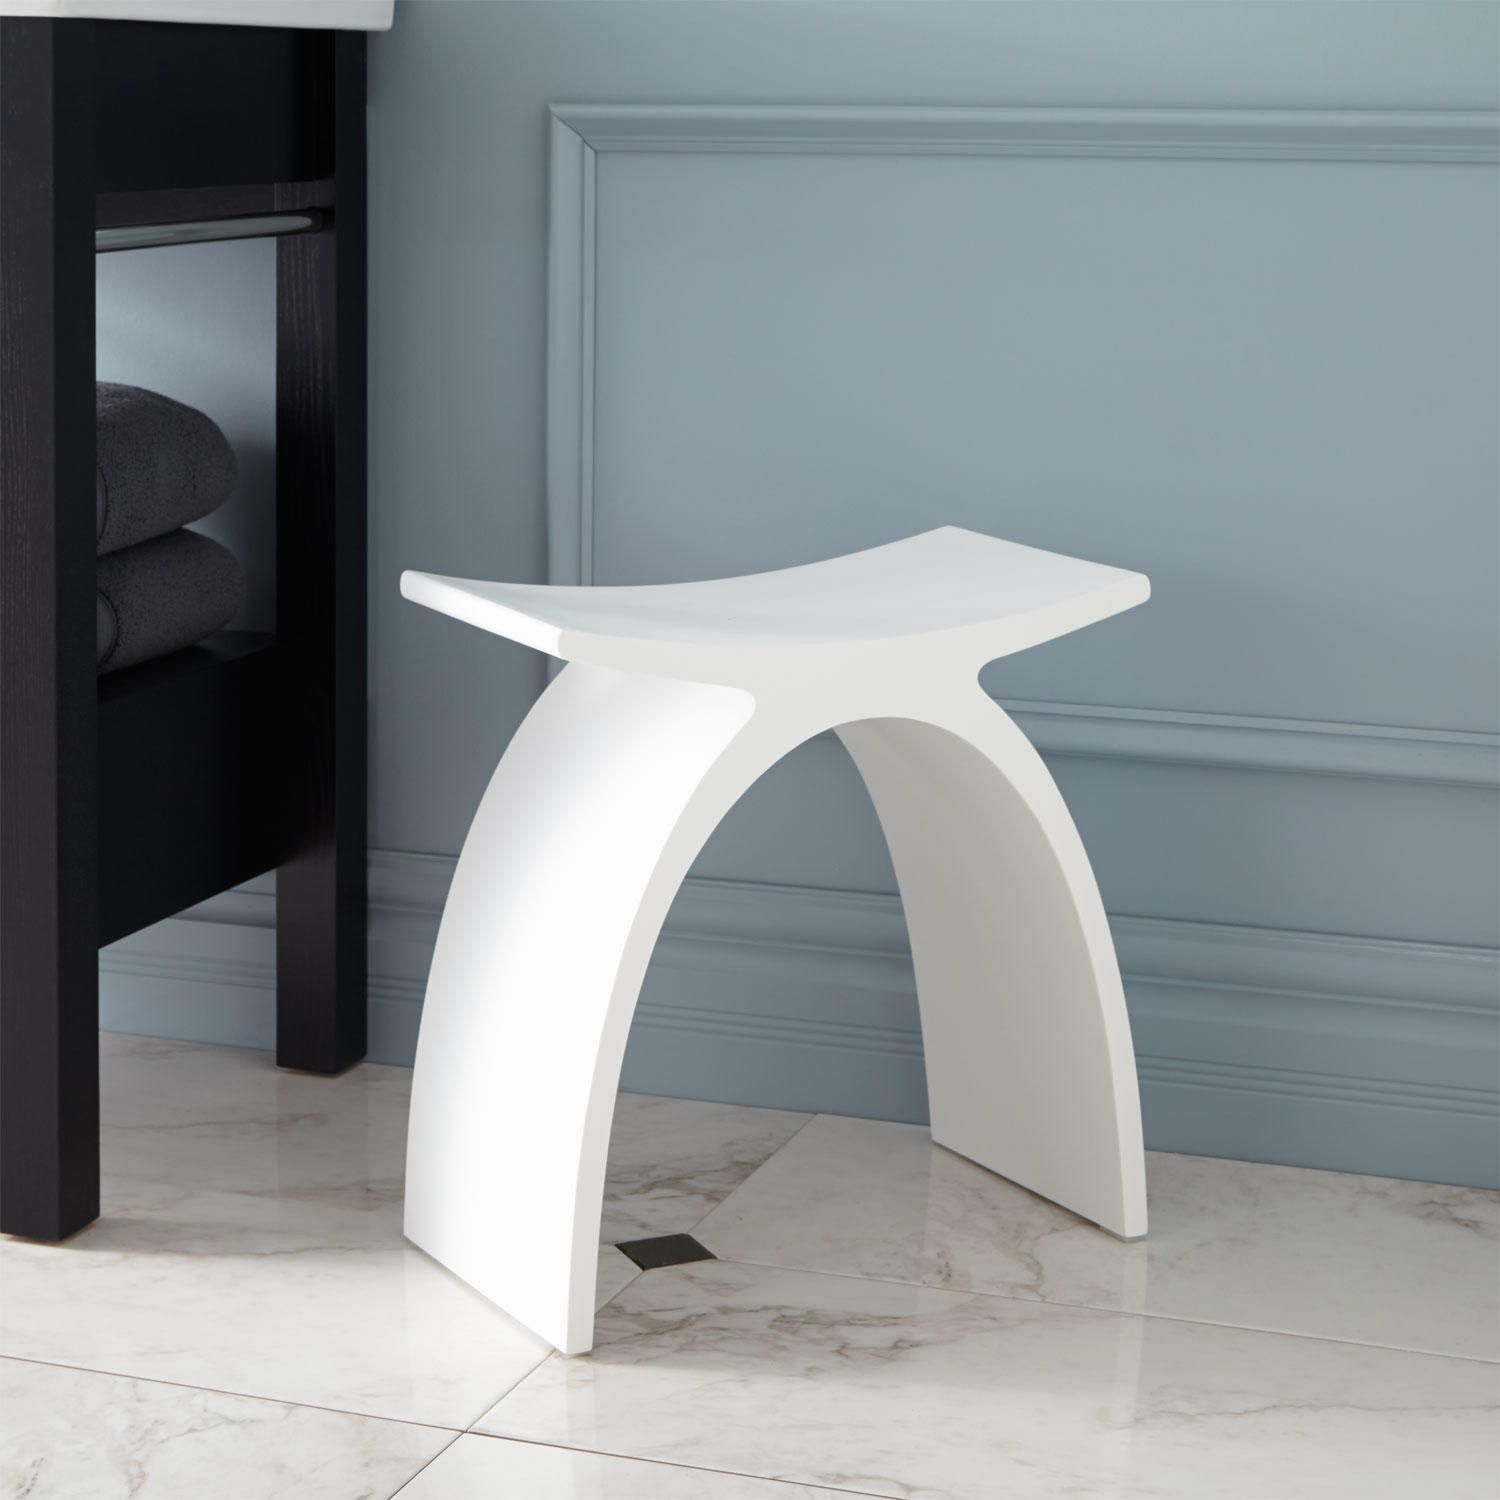 Dahlia Matte Resin Bath Stool - White | Pinterest | Bath stool ...